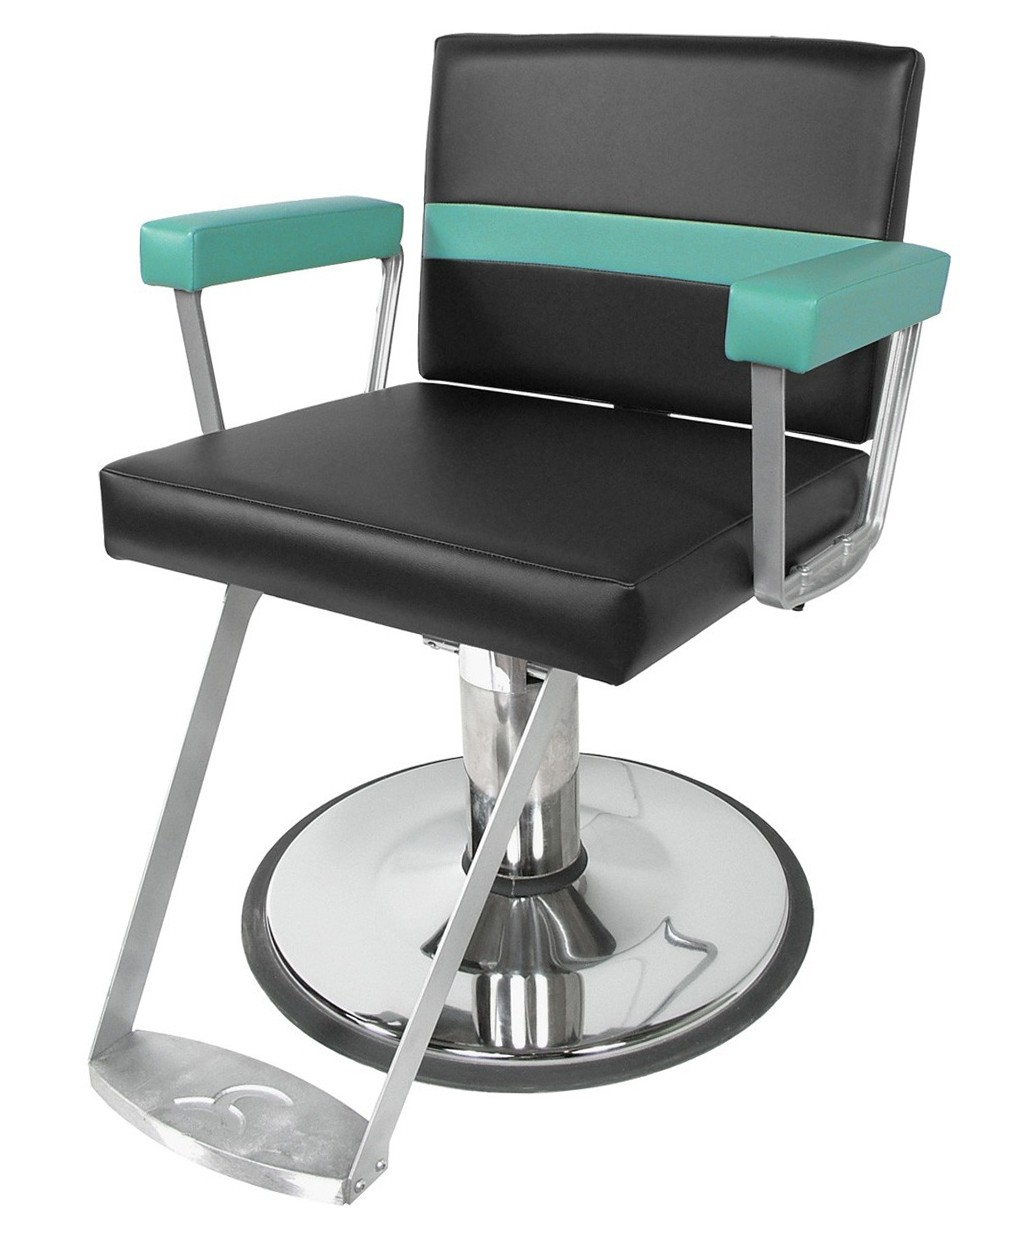 9800 Taress Styling Chair with Standard Base